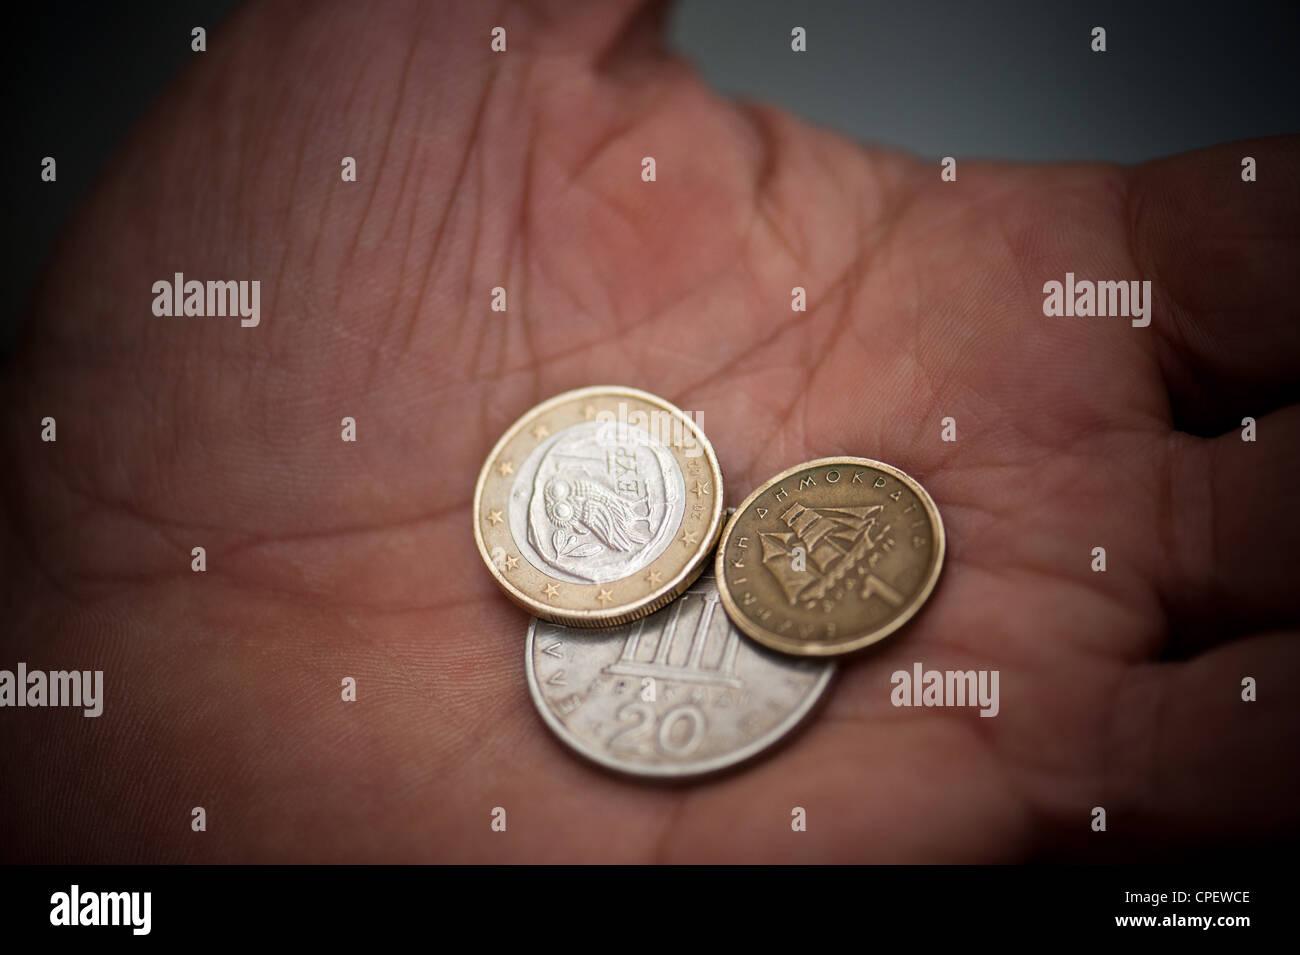 One euro coin together with 20 drachma coin and a one drachma coin - Stock Image